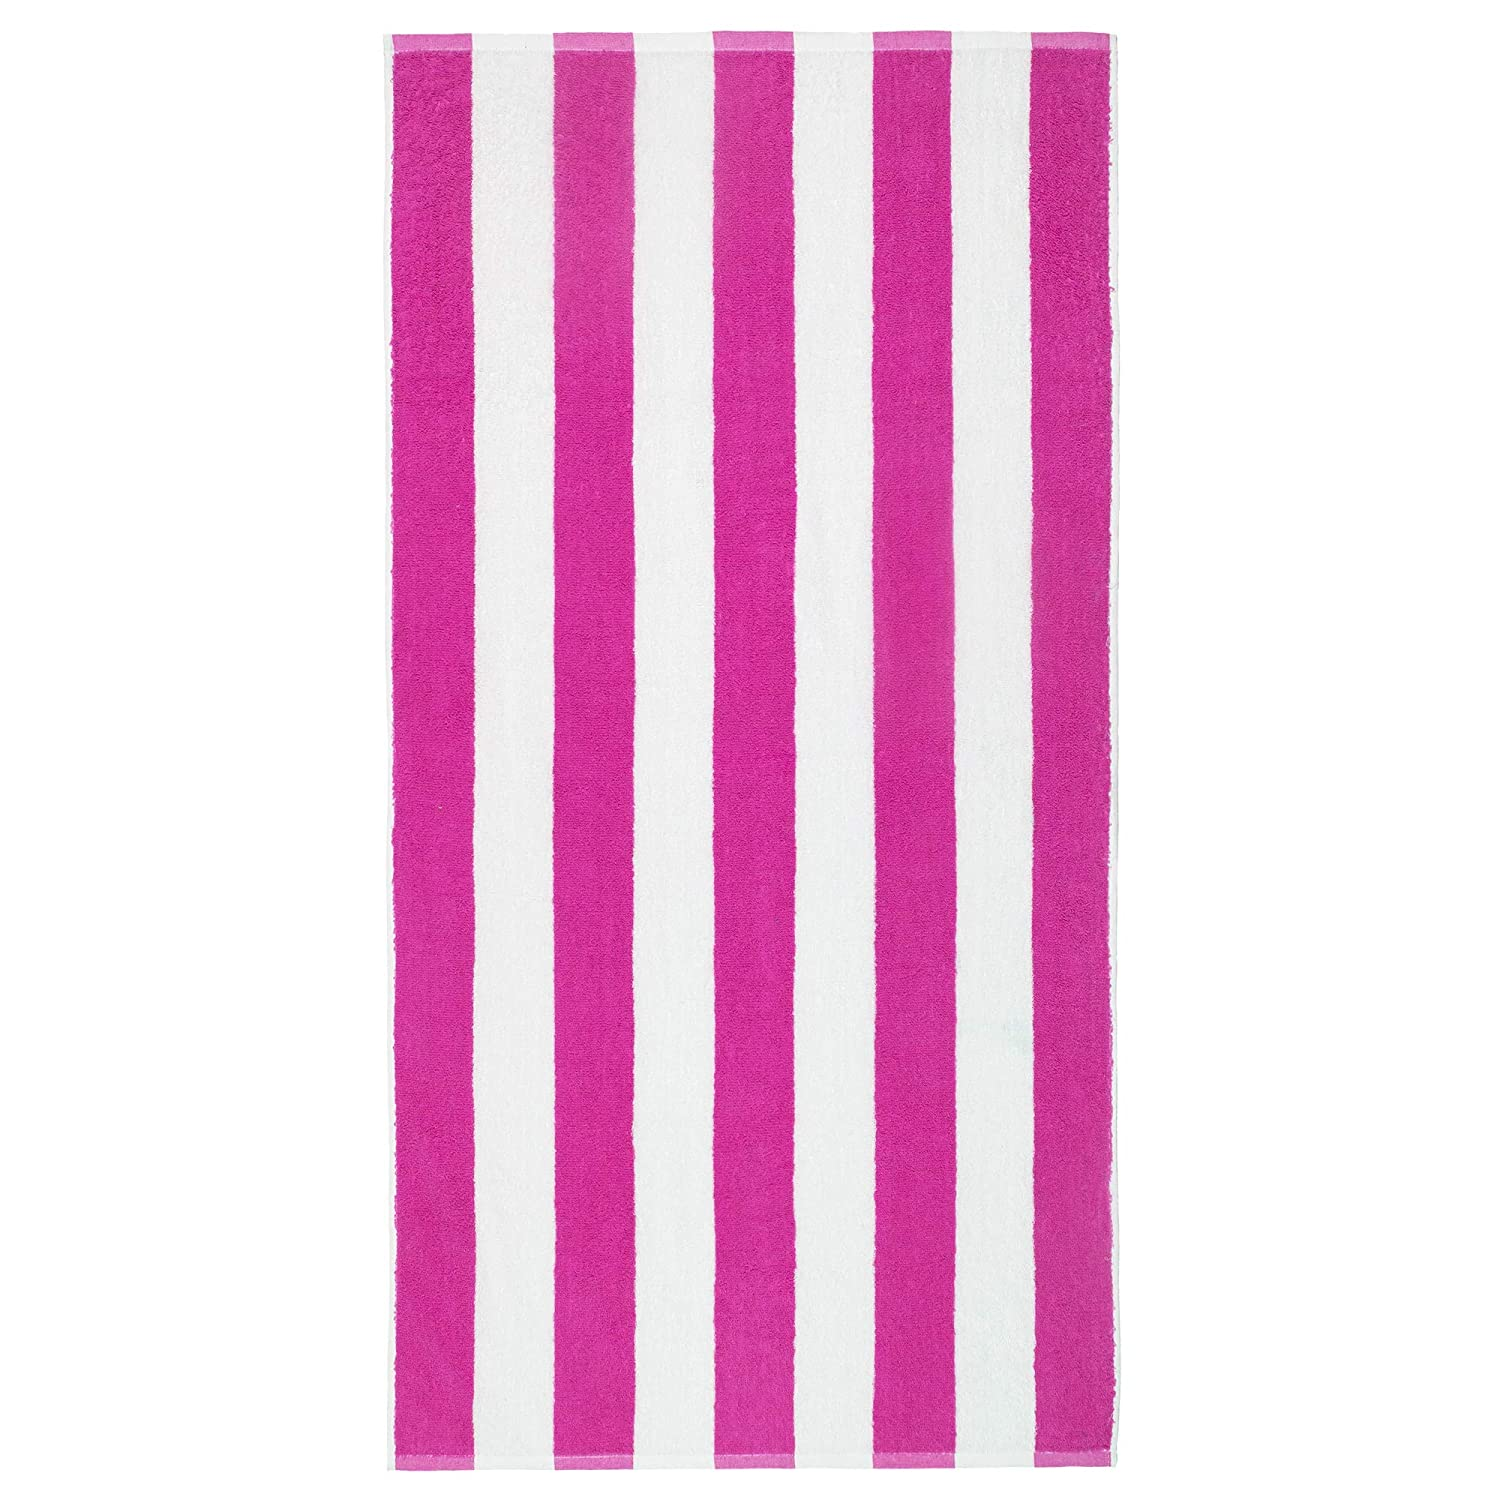 Extra Soft Large Beach Towel 32 x 62 inch 4 Pack Cabana Stripe Hotel Pool /& Resort Style Terry 100/% Cotton Softerry